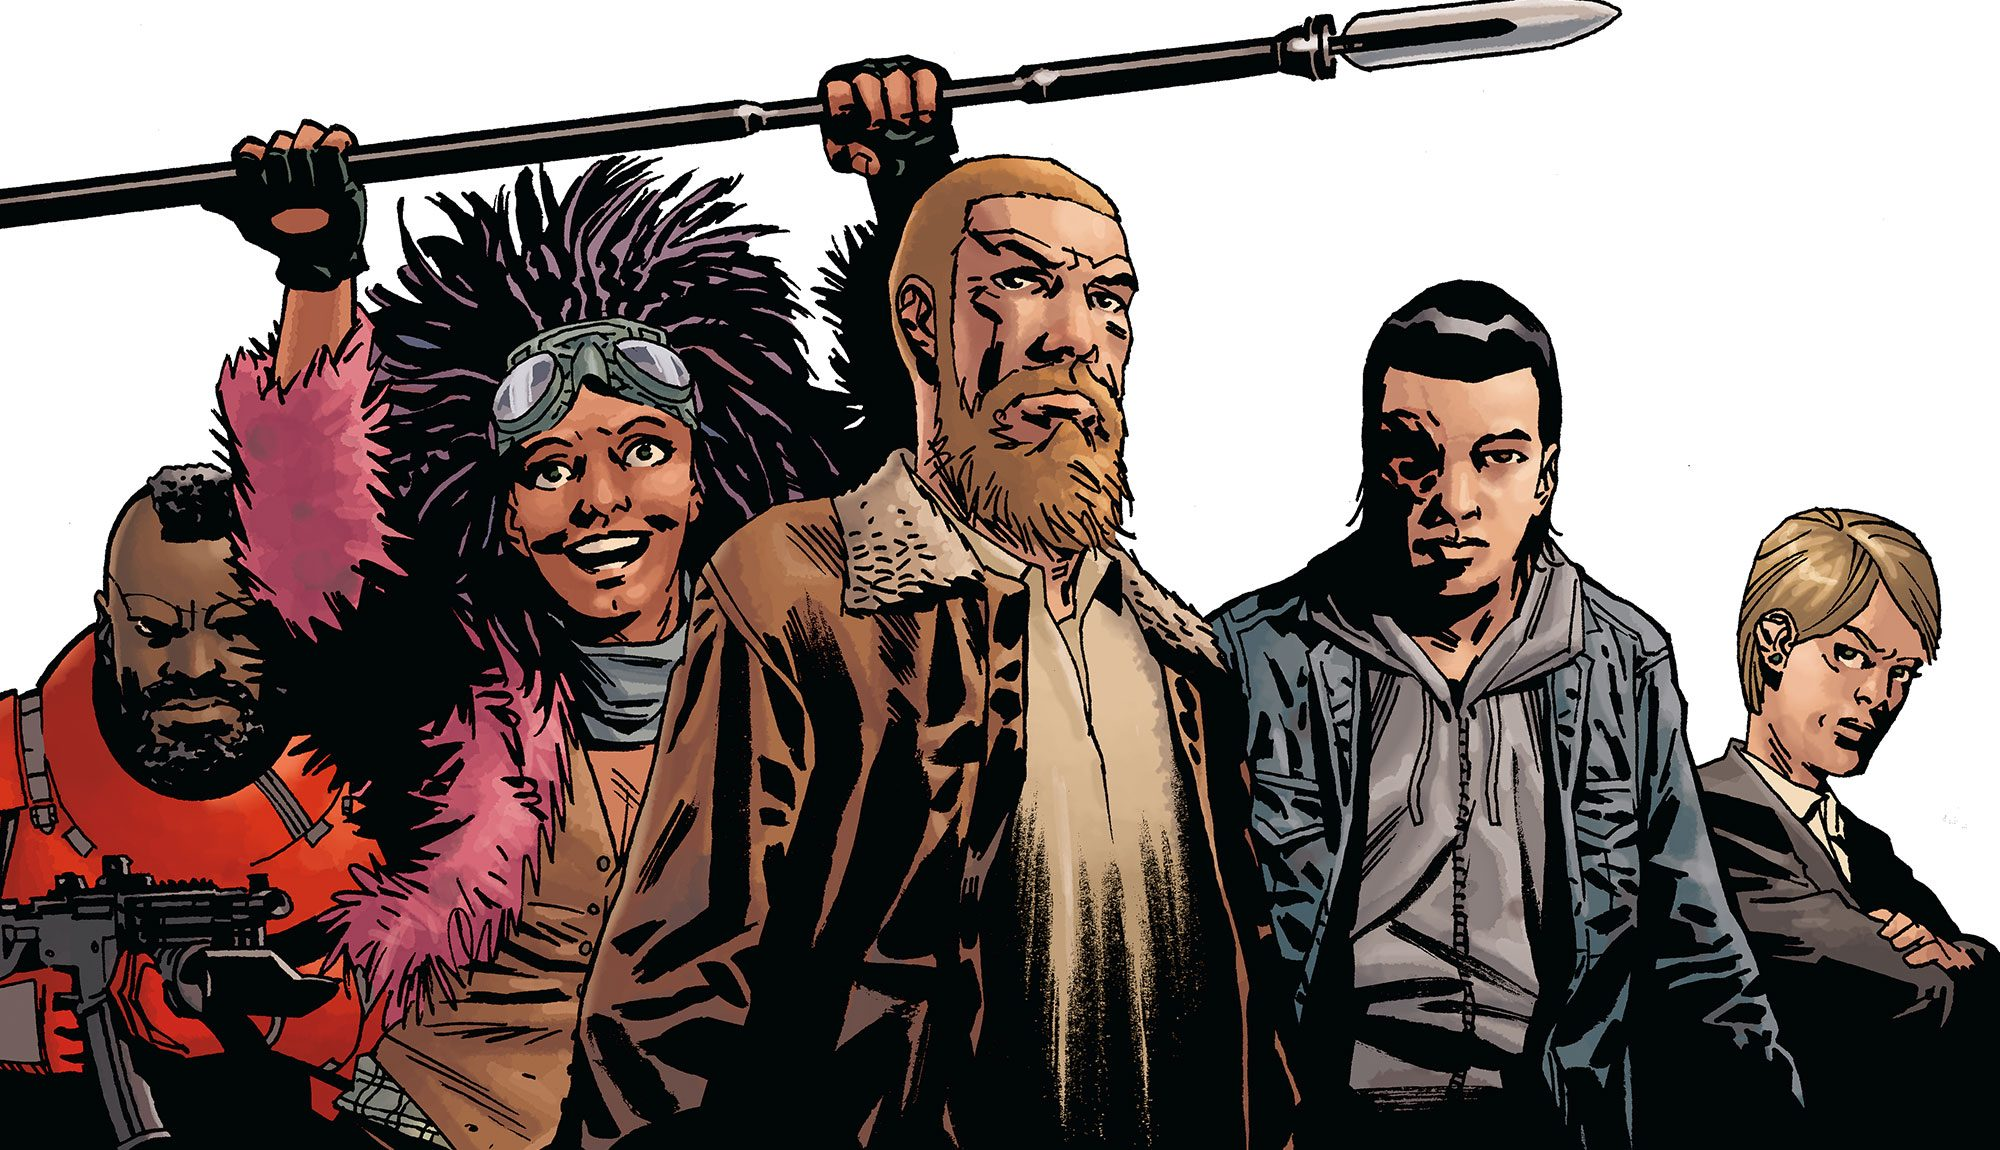 Moderne The Walking Dead Compendium 4 Gets Cover & Release Date - Skybound QY-59